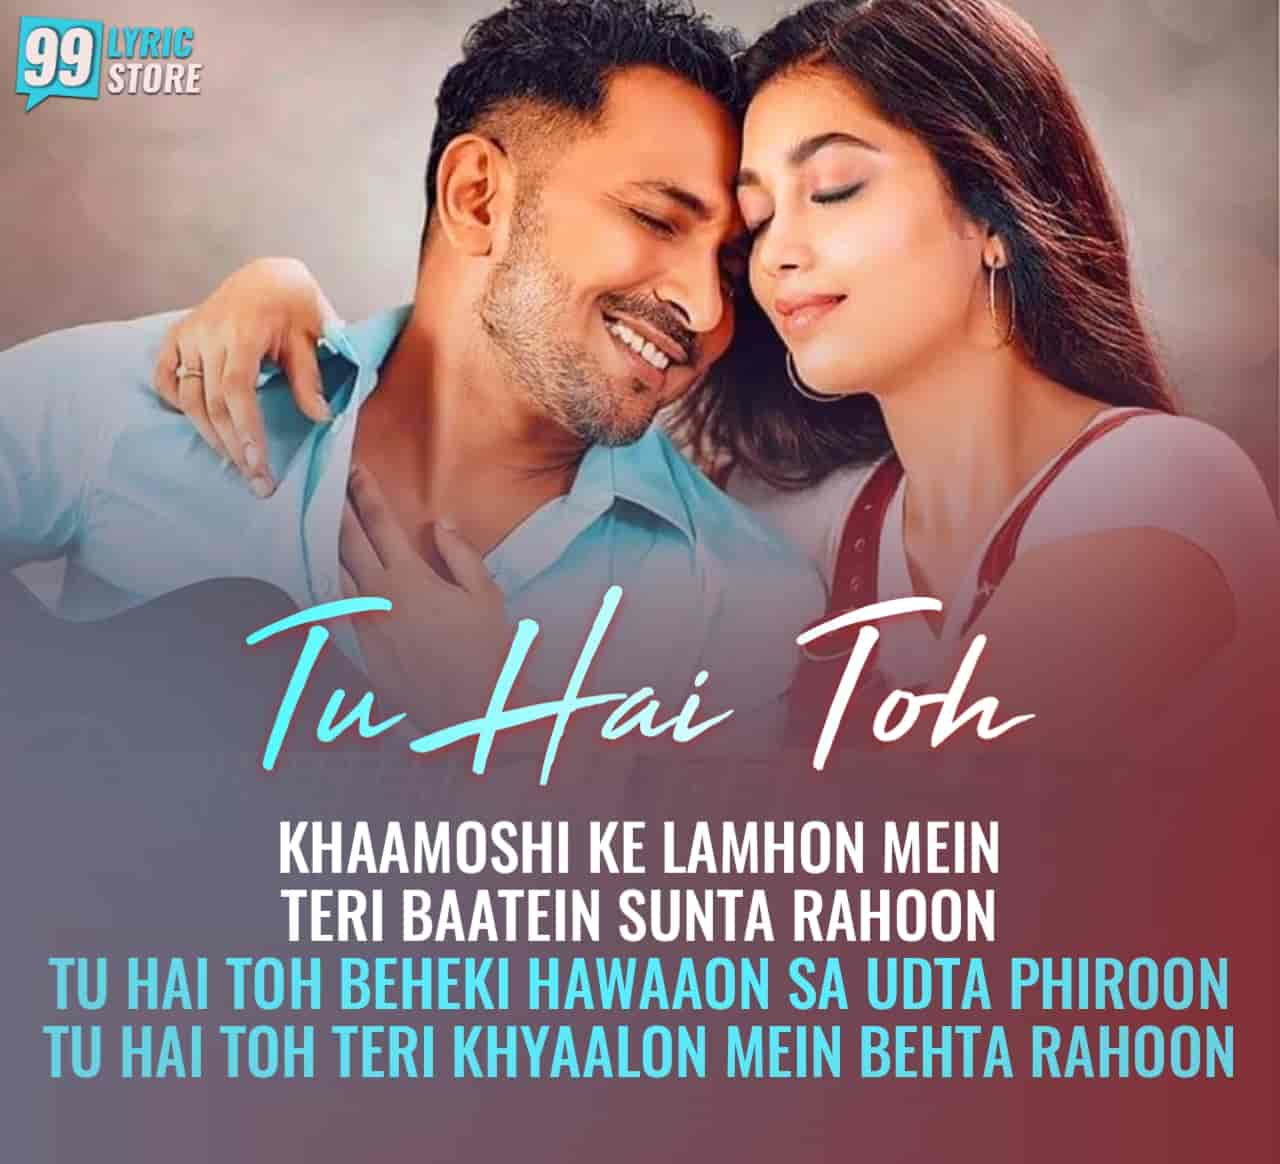 Tu Hai Toh Song Image Features Terence Lewis and Digangna Suryavanshi